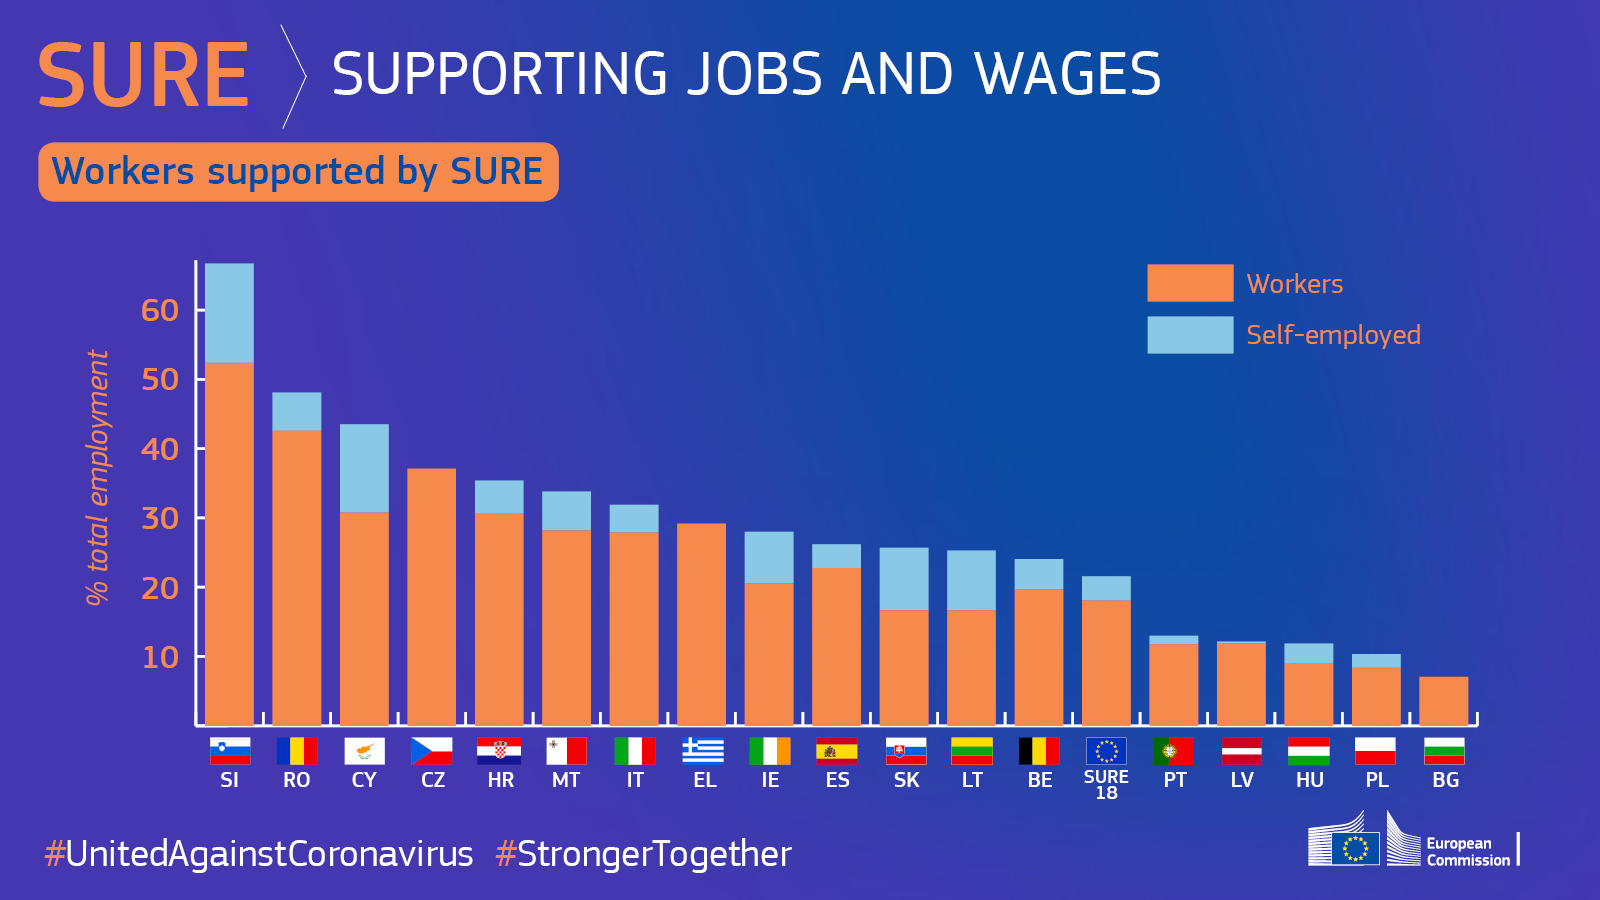 Workers supported by SURE